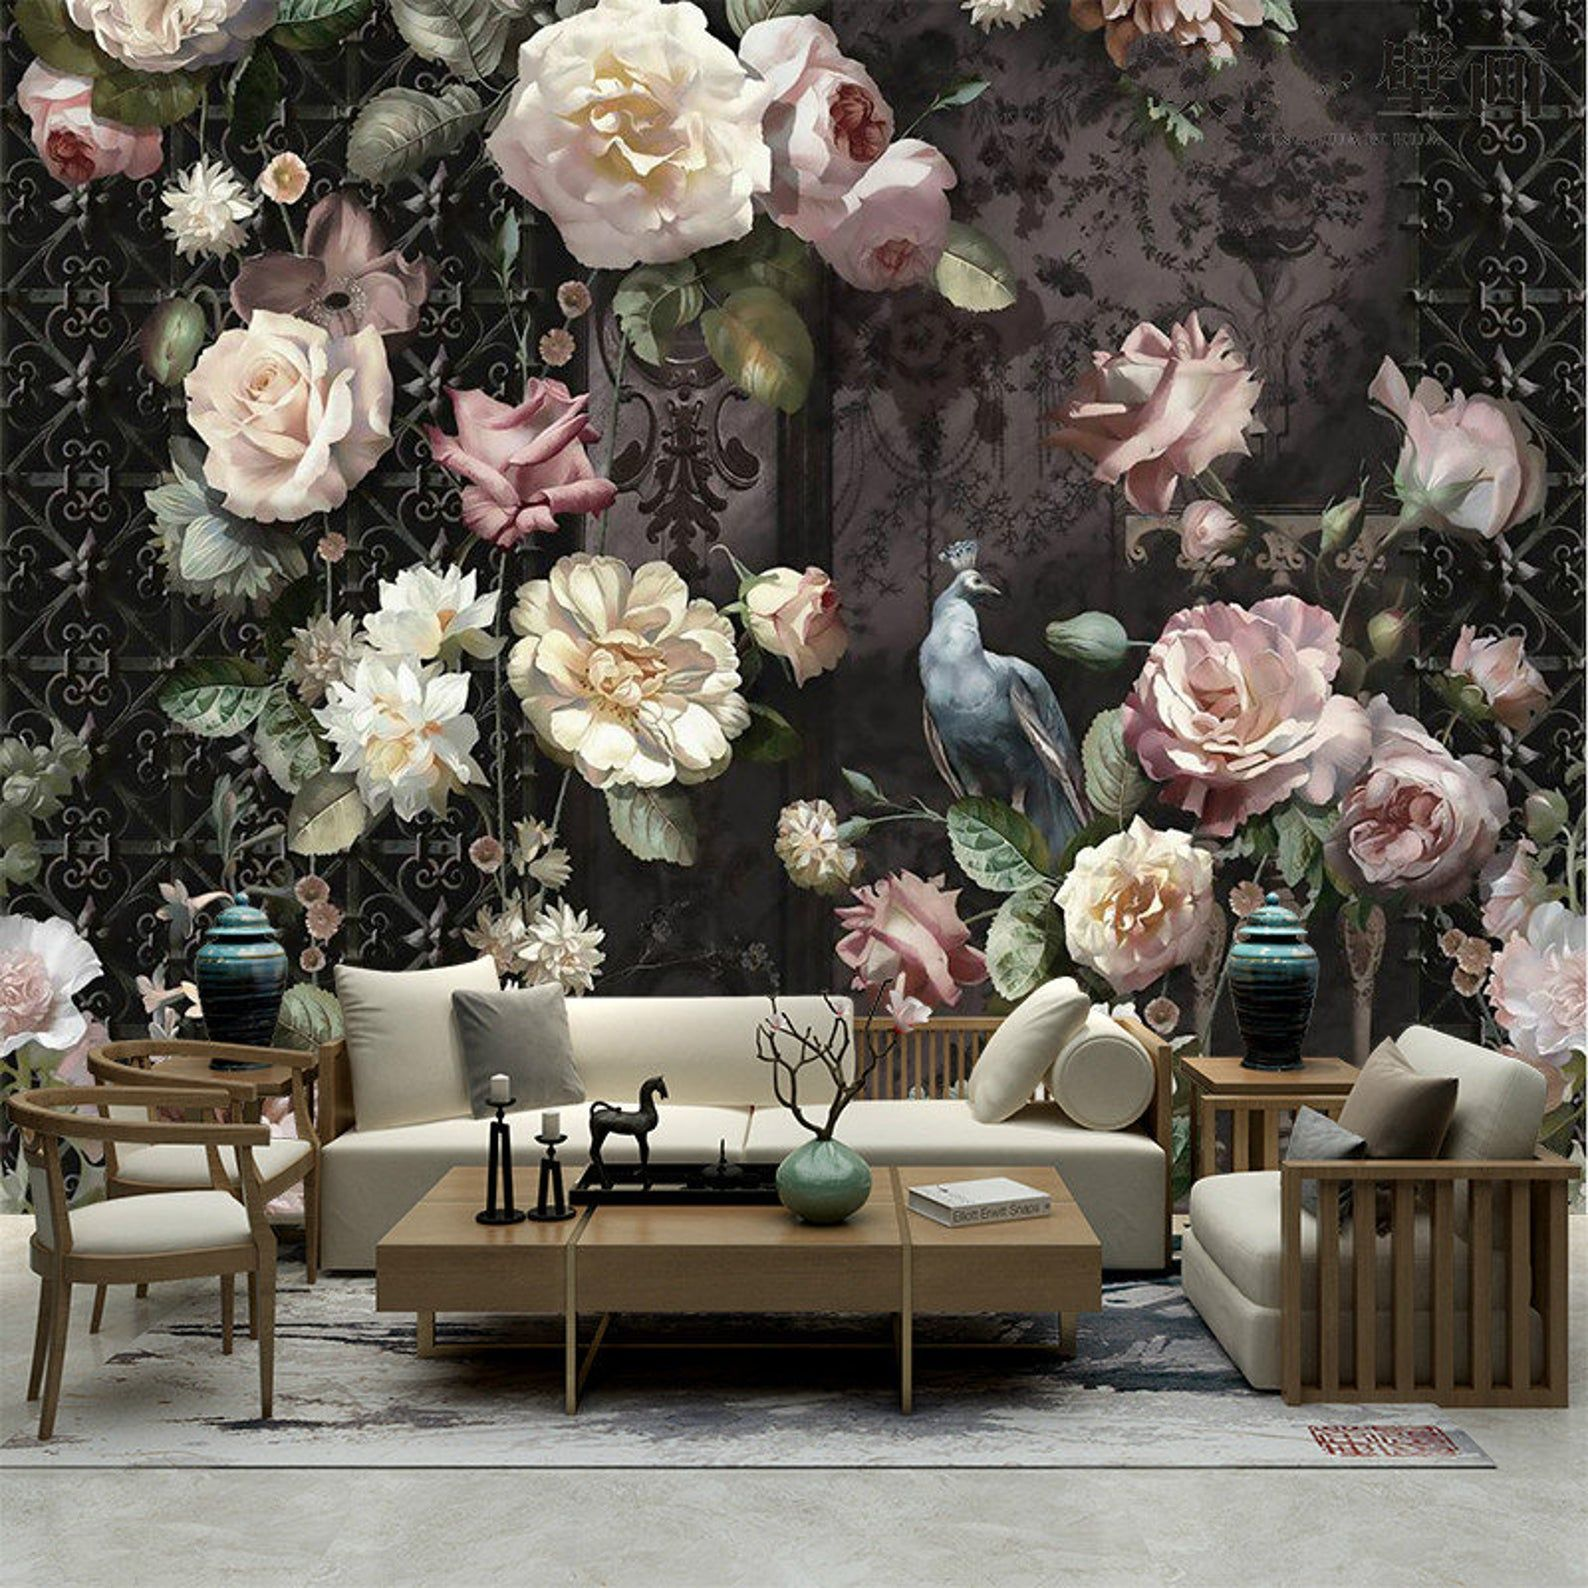 Oil Painting Dutch Victorian Flowers Floral Wallpaper Wall Etsy